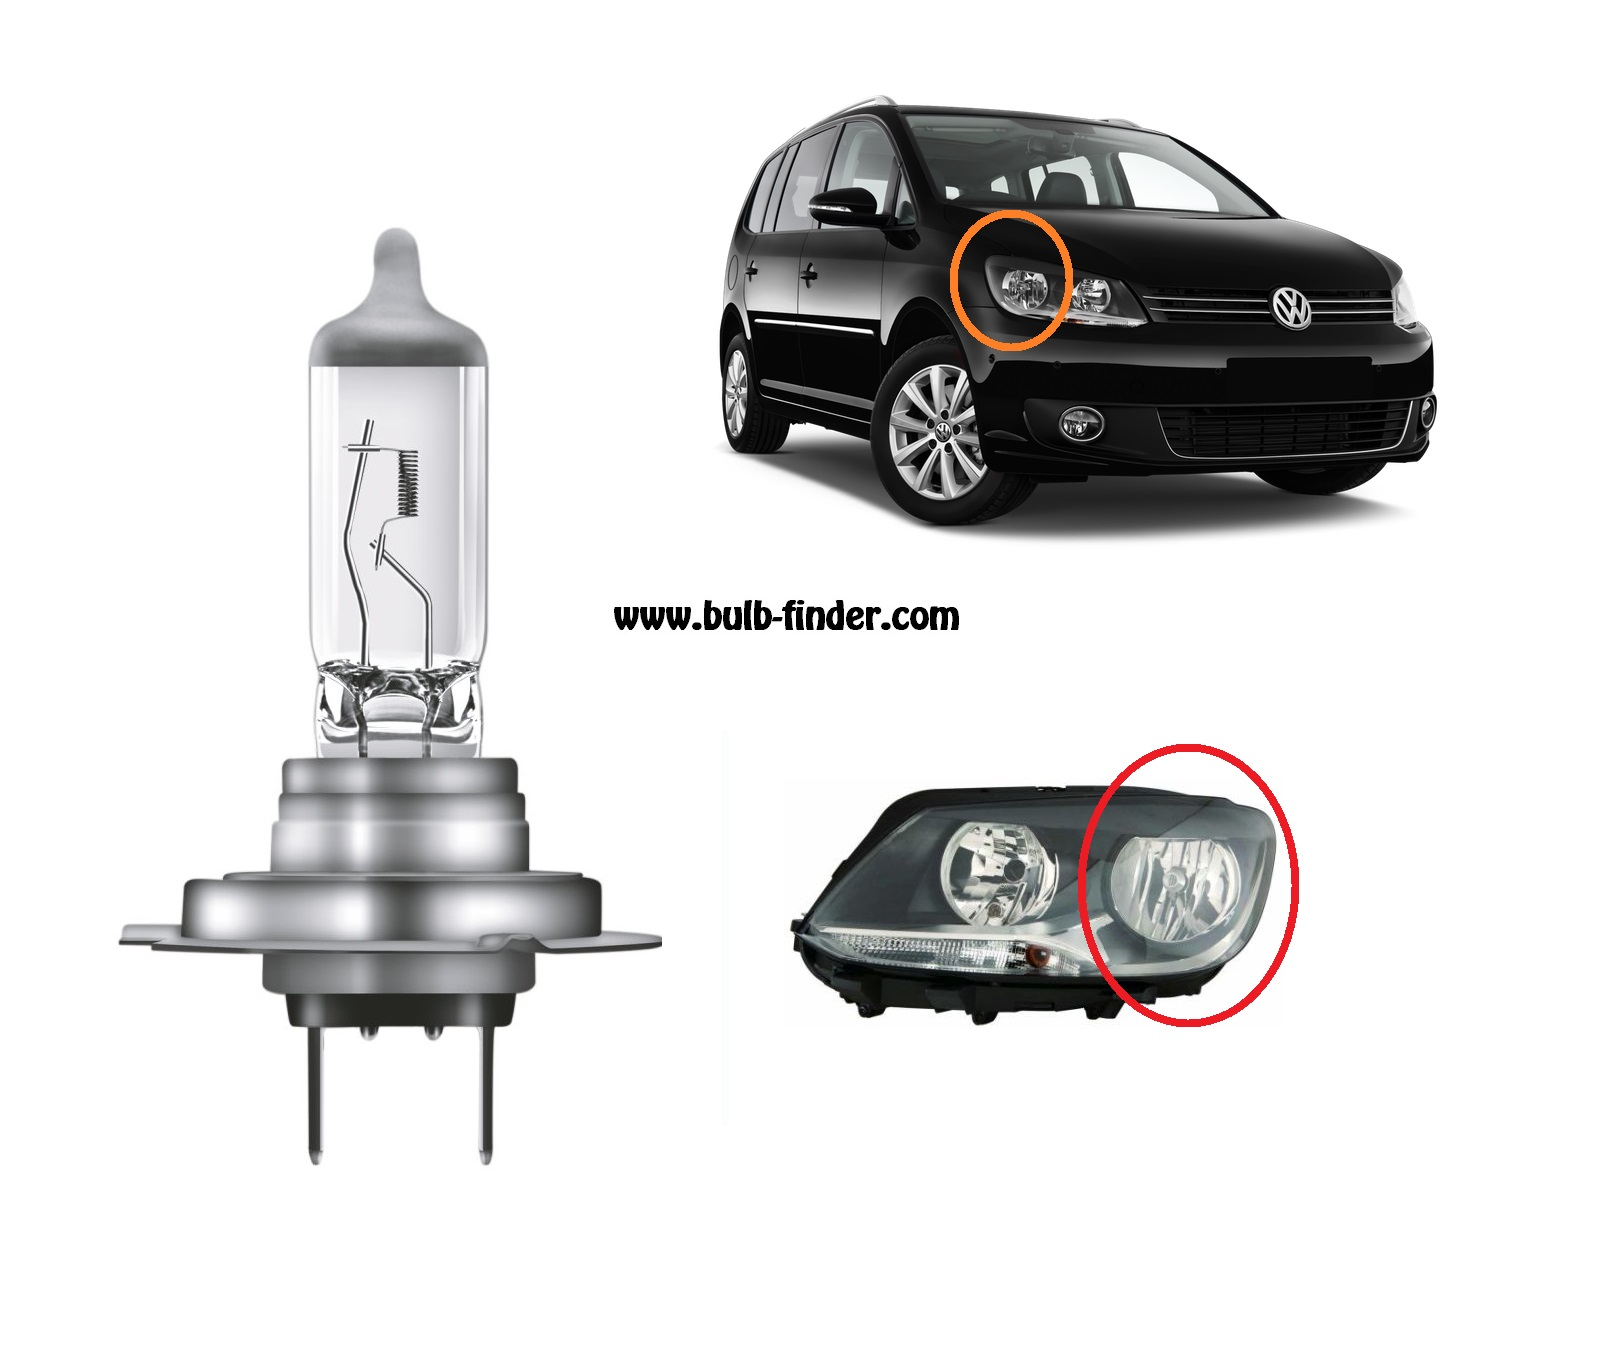 VW Touran model bulb for LOW BEAM HEADLIGHT specification